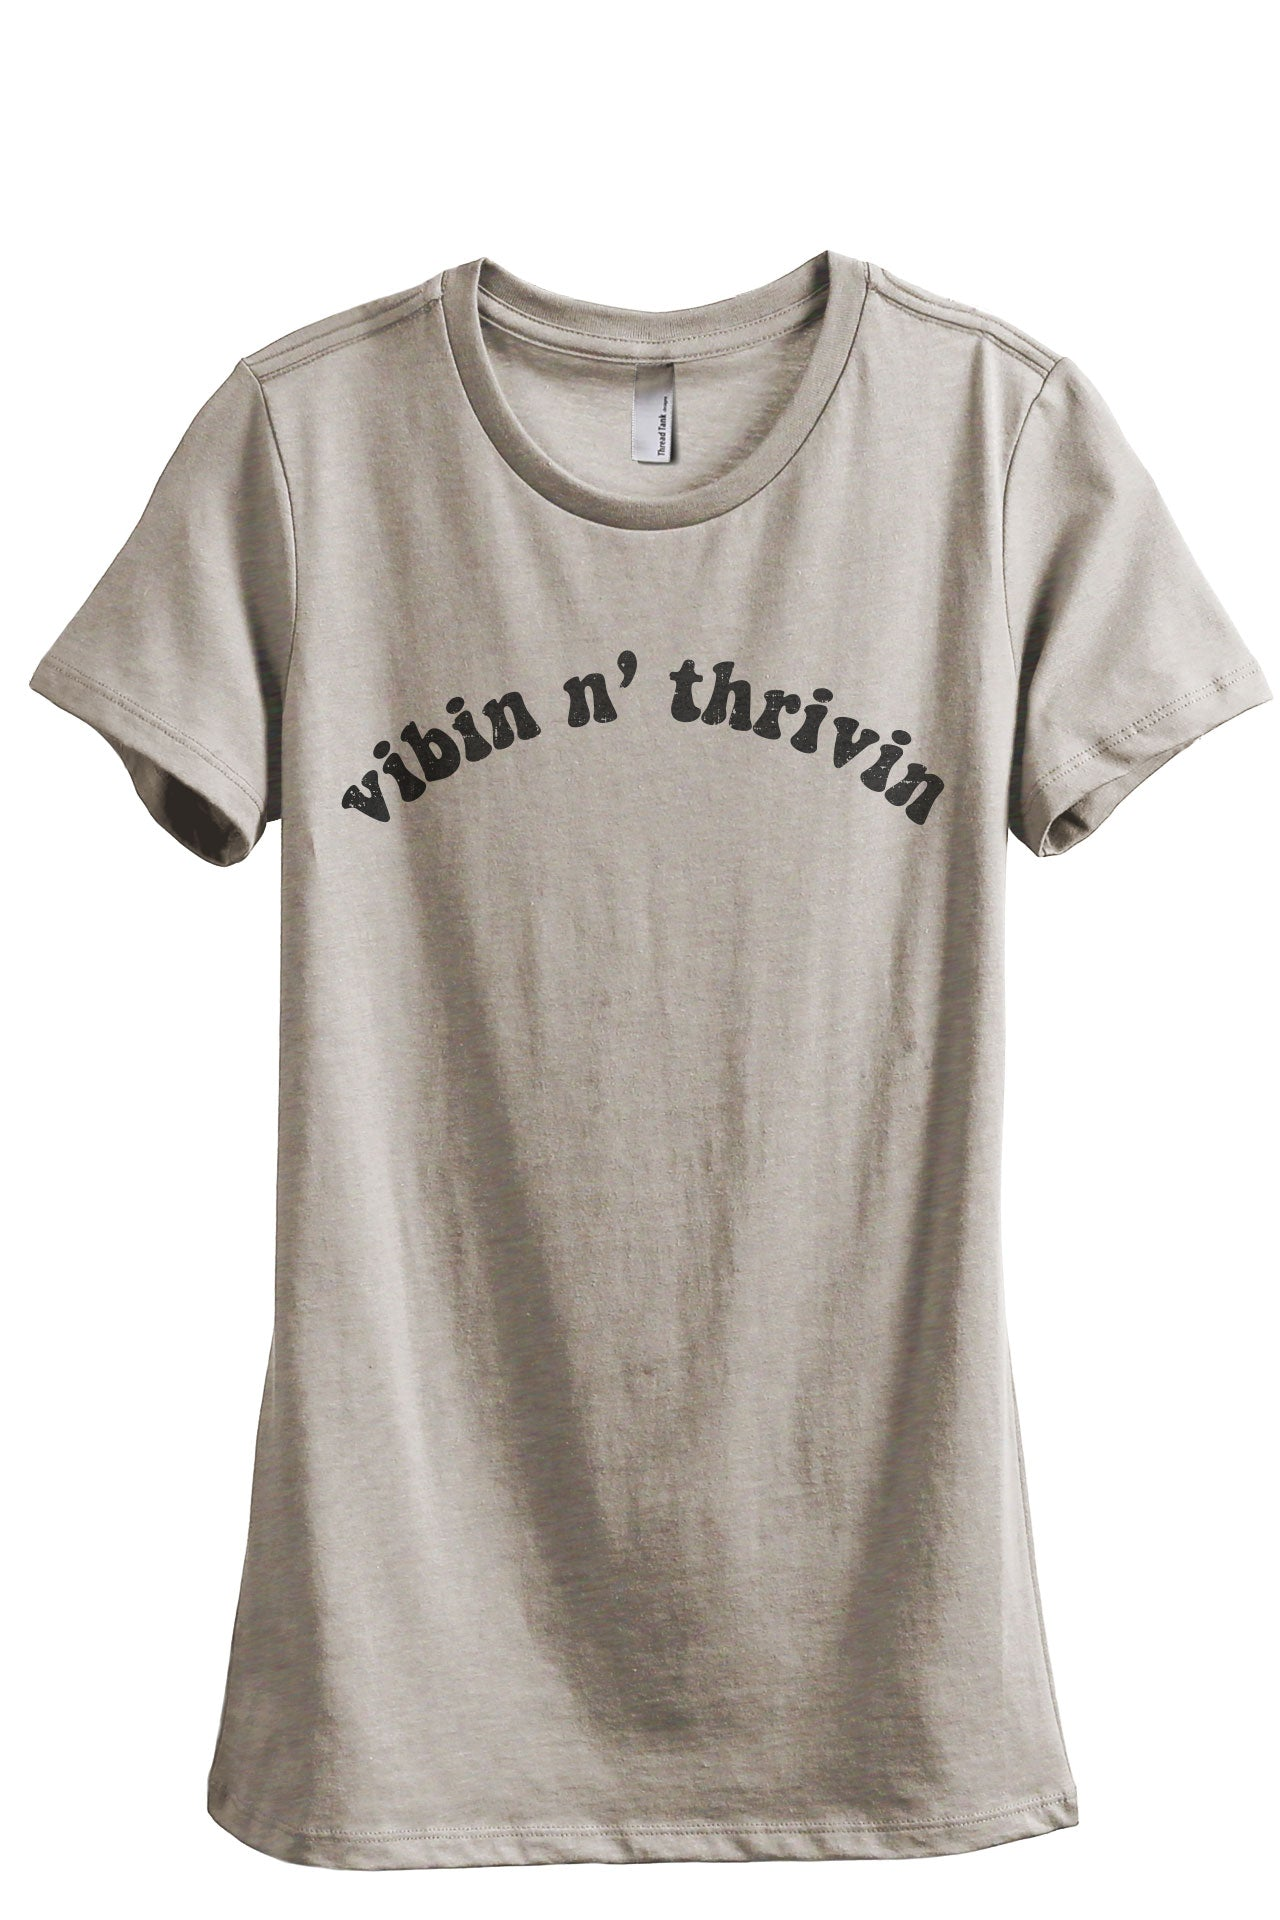 Vibin N' Thrivin Women's Relaxed Crewneck T-Shirt Top Tee Heather Tan Grey